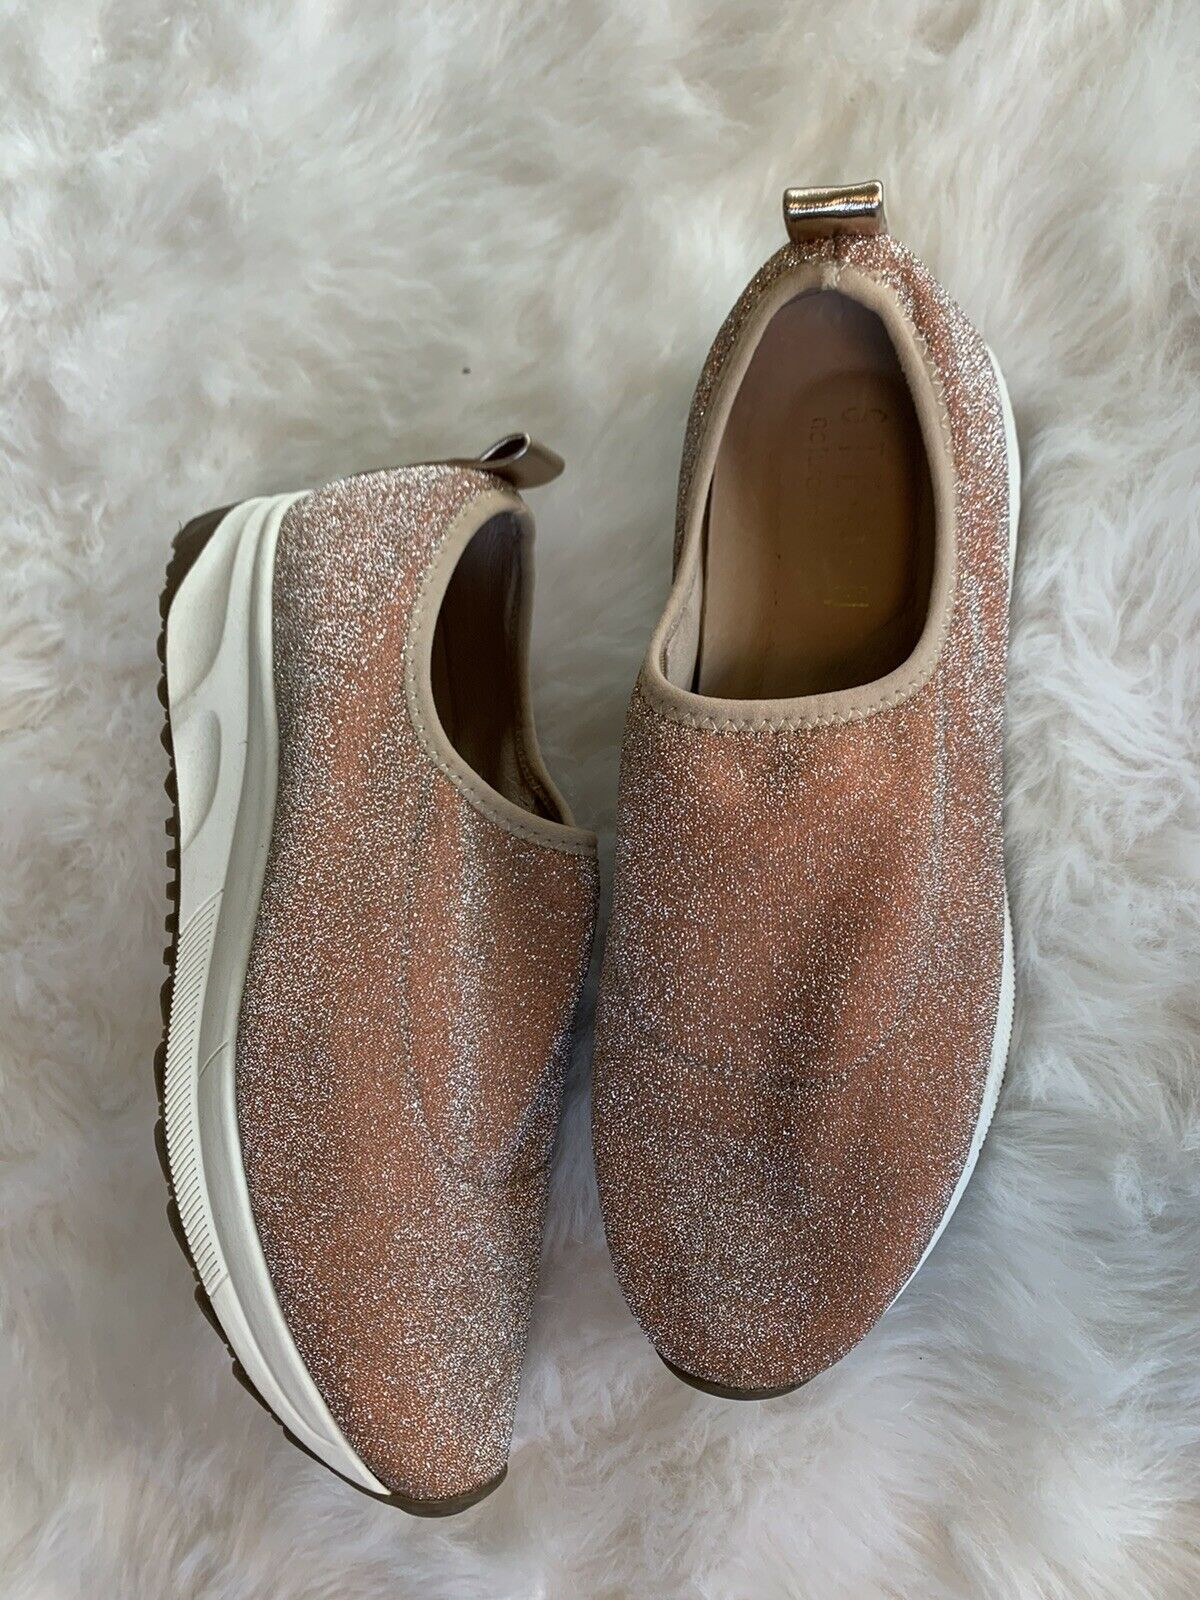 Steeve Madden Shoes Rose Gold NC-slate Casual Jogger Sneaker Comfort Size 8.5